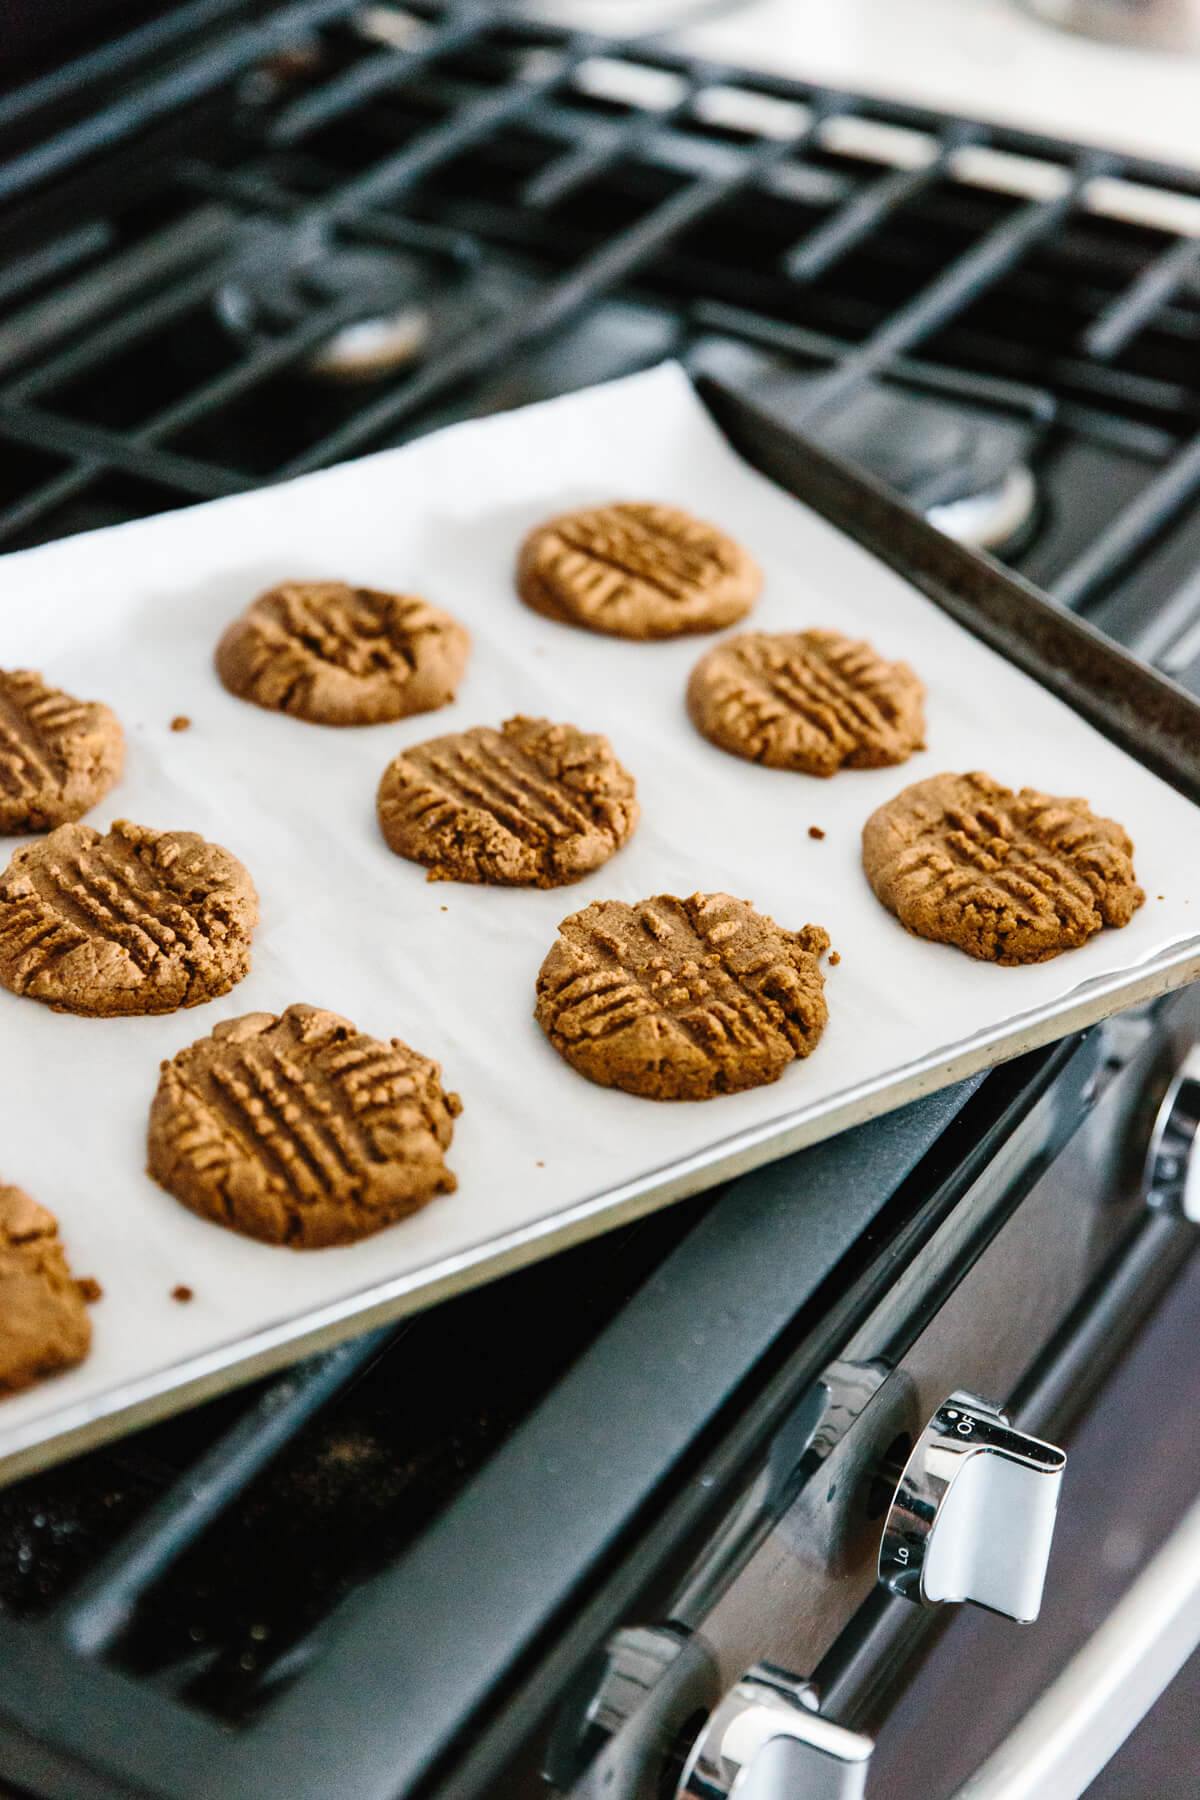 Almond butter cookies straight out of the oven.